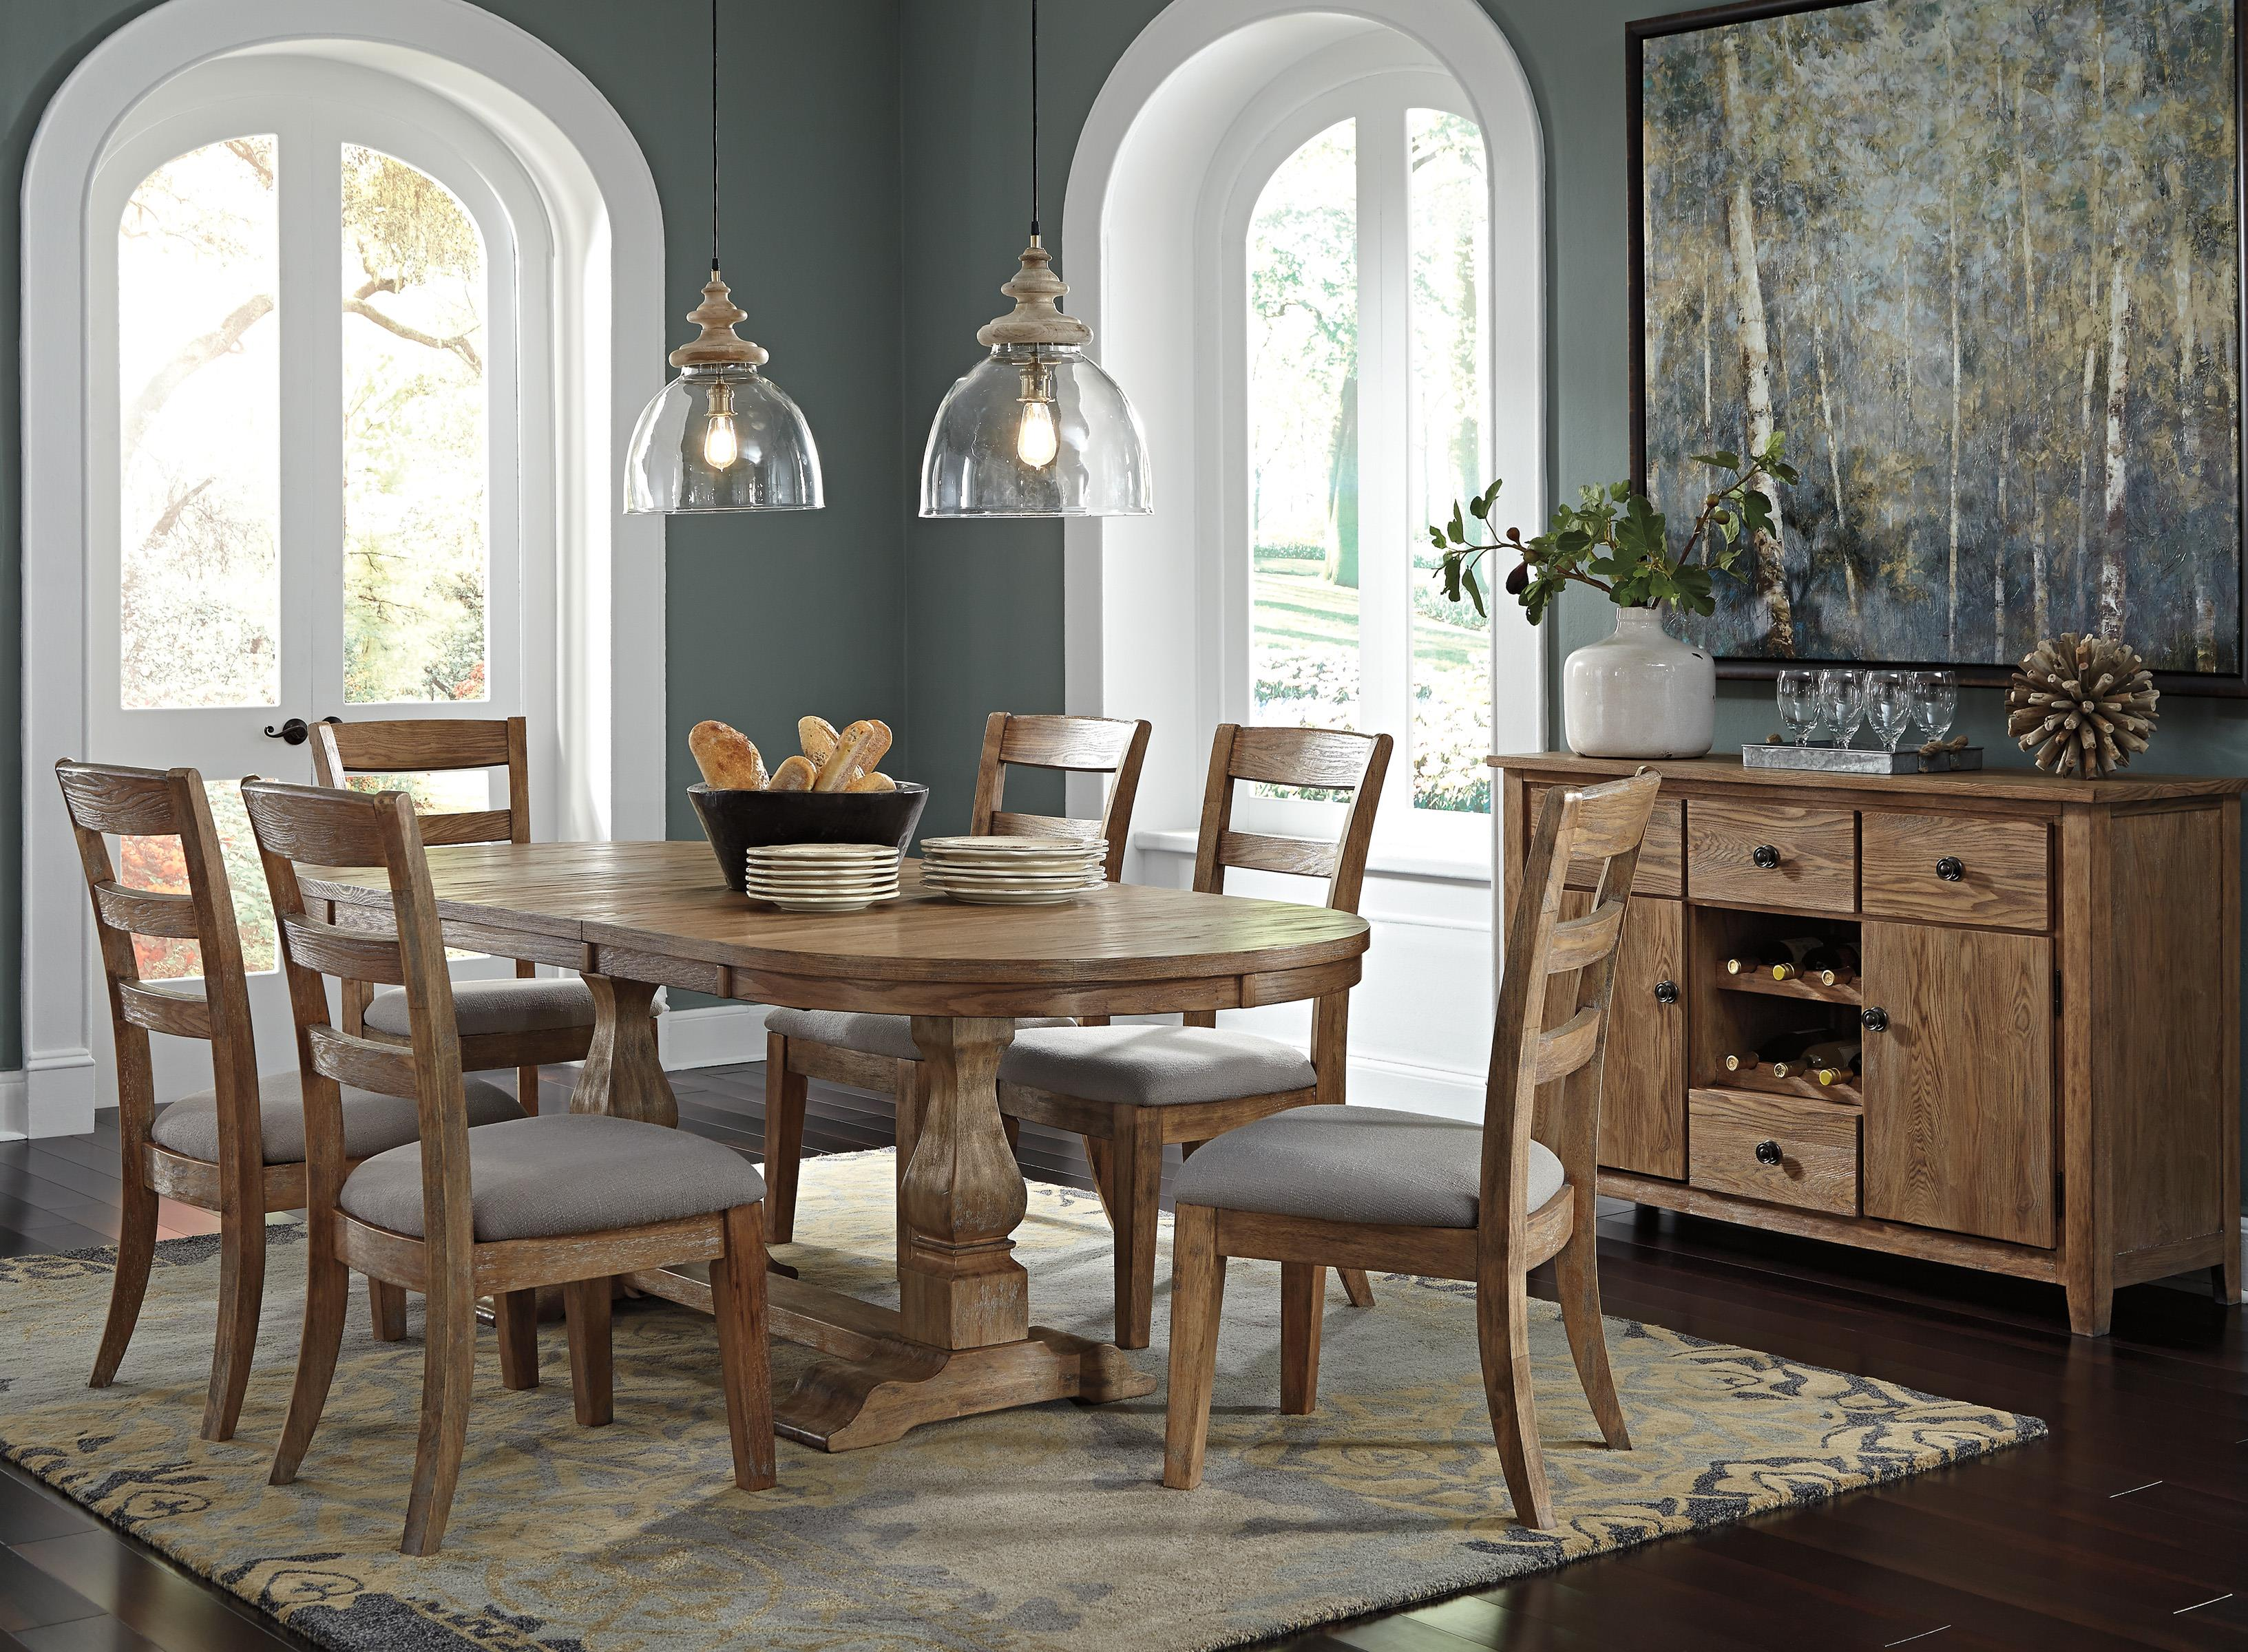 Signature Design by Ashley Danimore Casual Dining Room Group - Item Number: D473 Dining Room Group 1